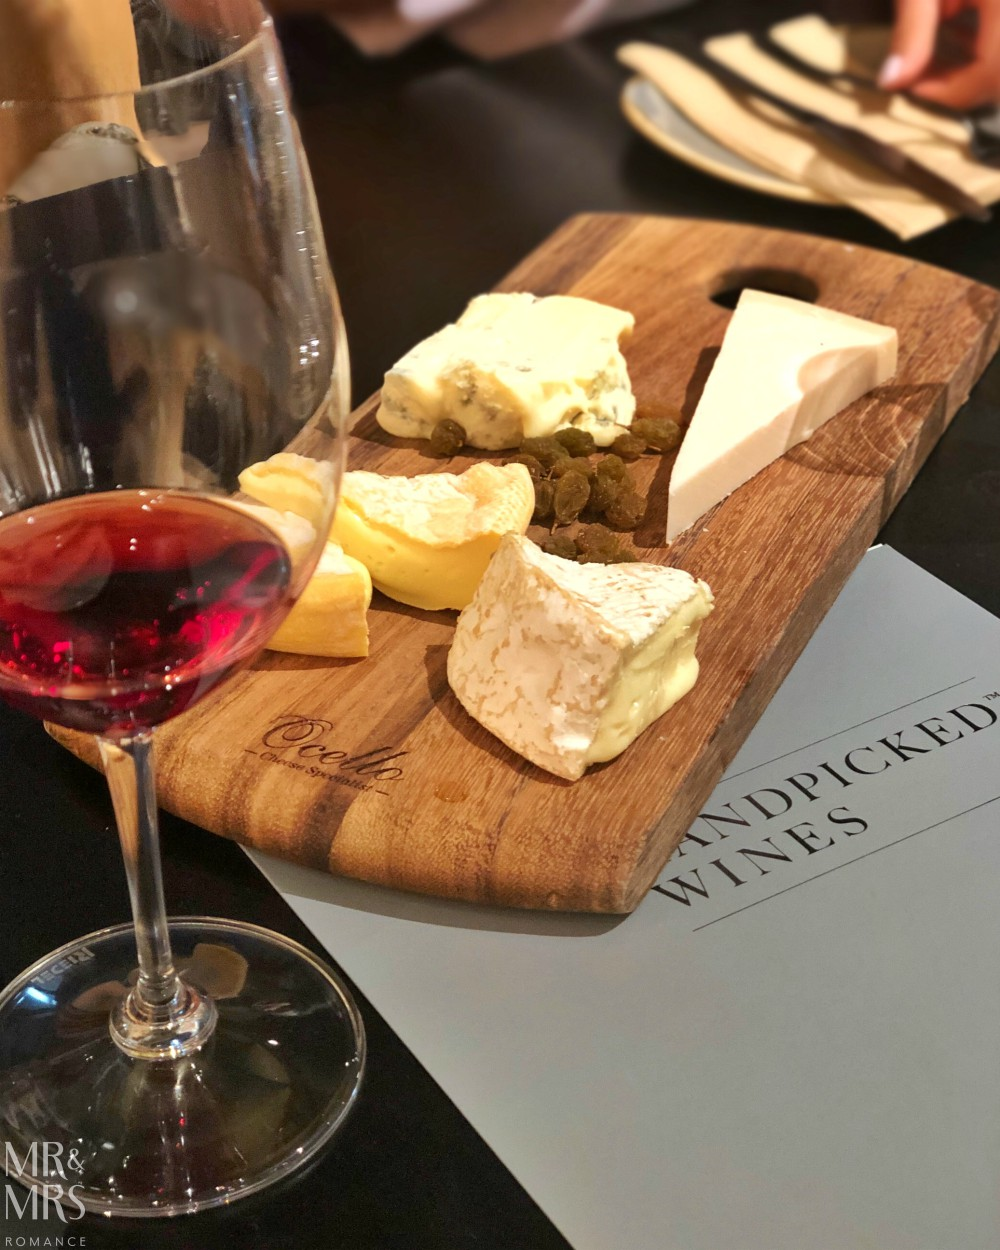 Wine masterclass - Handpicked Wine x Gorman - cheese from Ocello